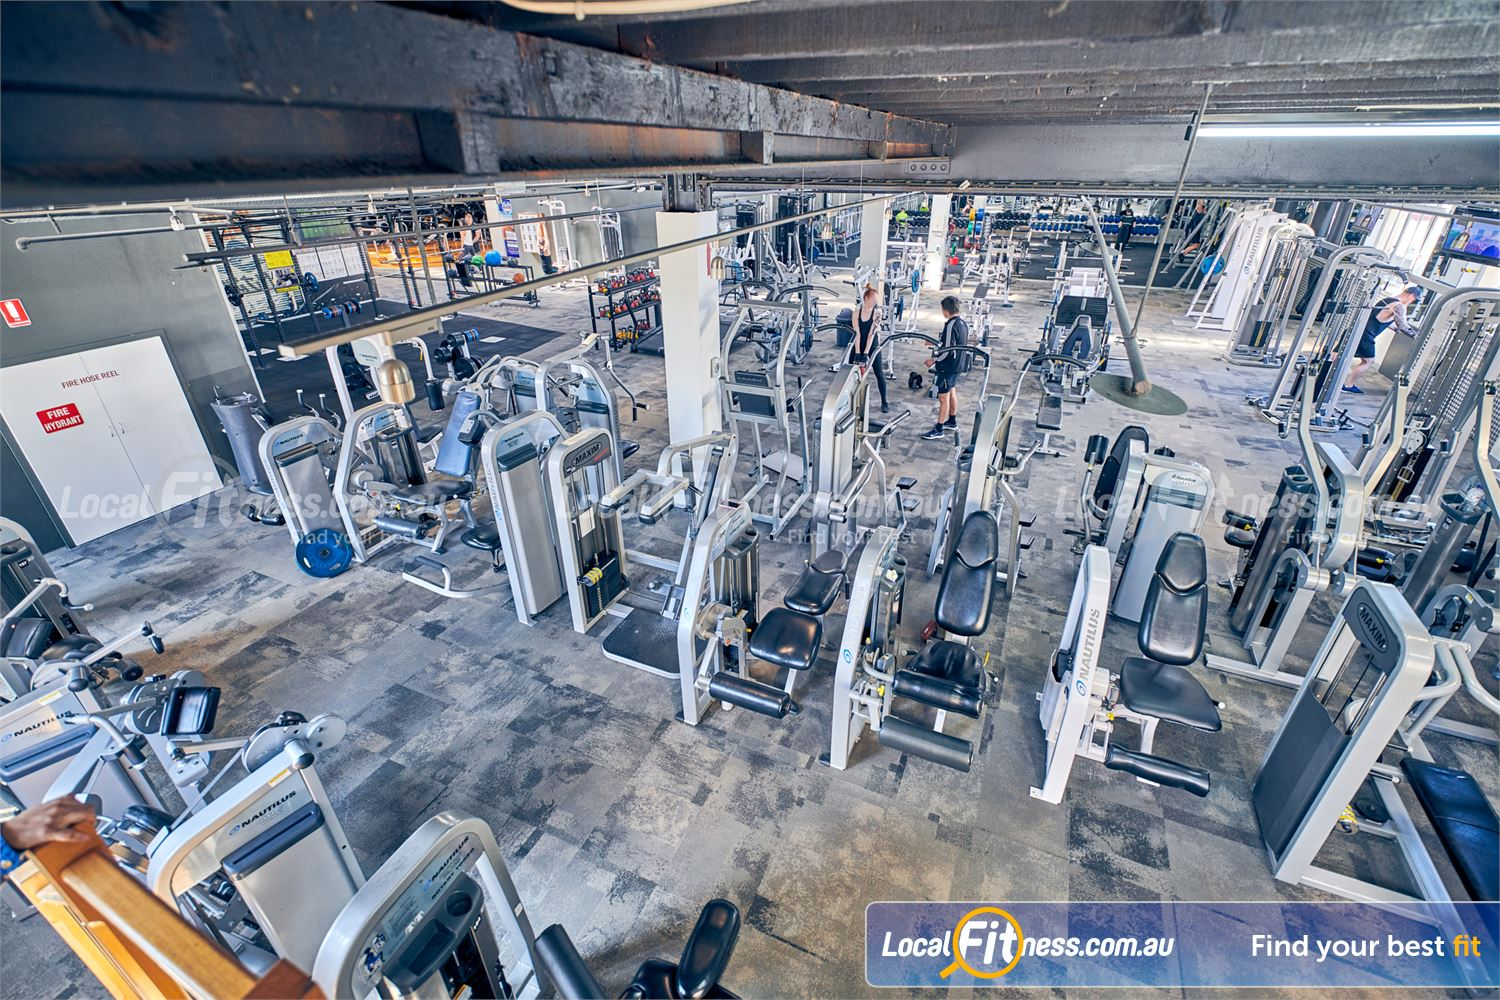 24 Hour Fitness Review (Bonus With 24 Hour Fitness promo code!) Overview 24 hour fitness is one of the biggest fitness club chains throughout America with more than clubs in 18 states. 24 hour fitness is the largest in the field with more than 4 million club .